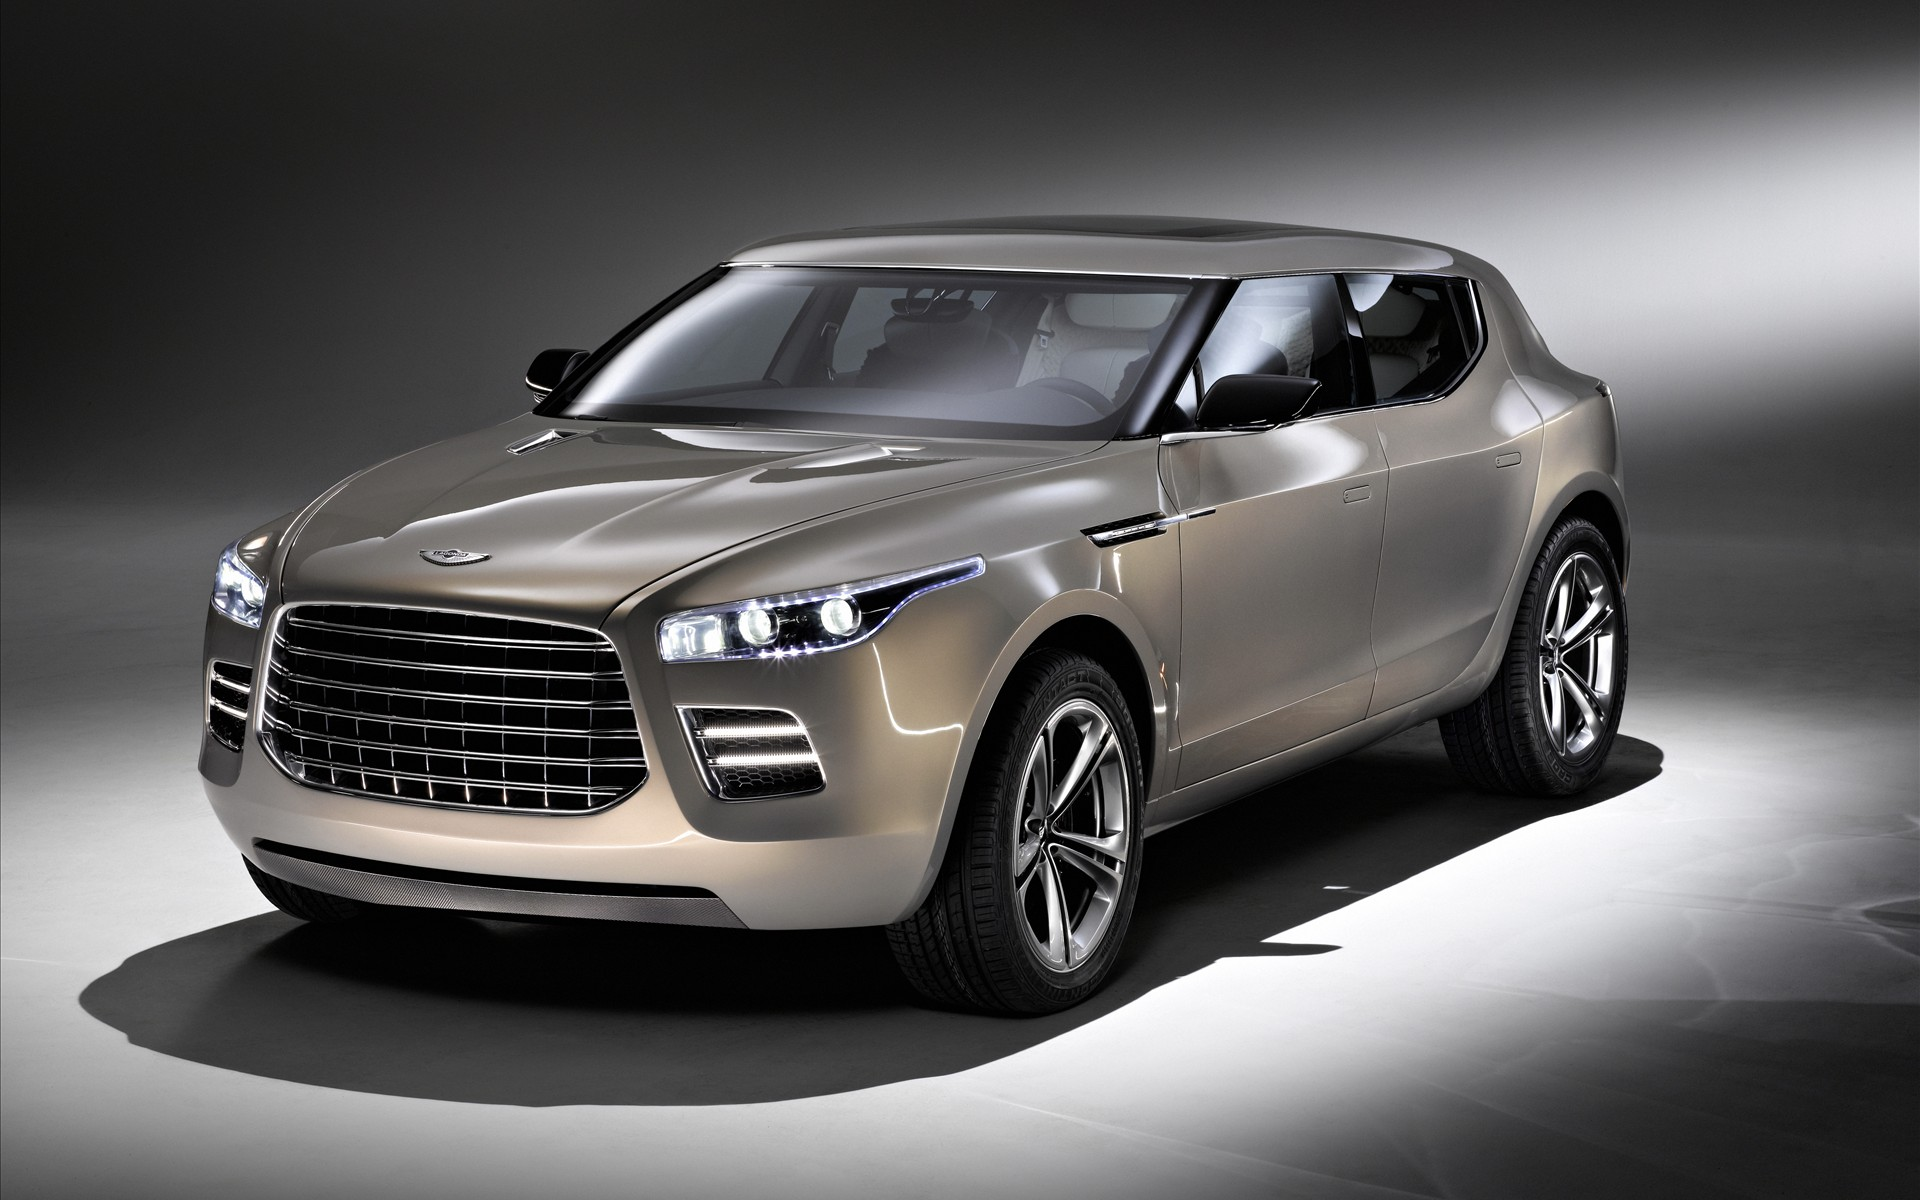 Aston Martin Lagonda Concept Wallpapers HD Wallpapers 1920x1200